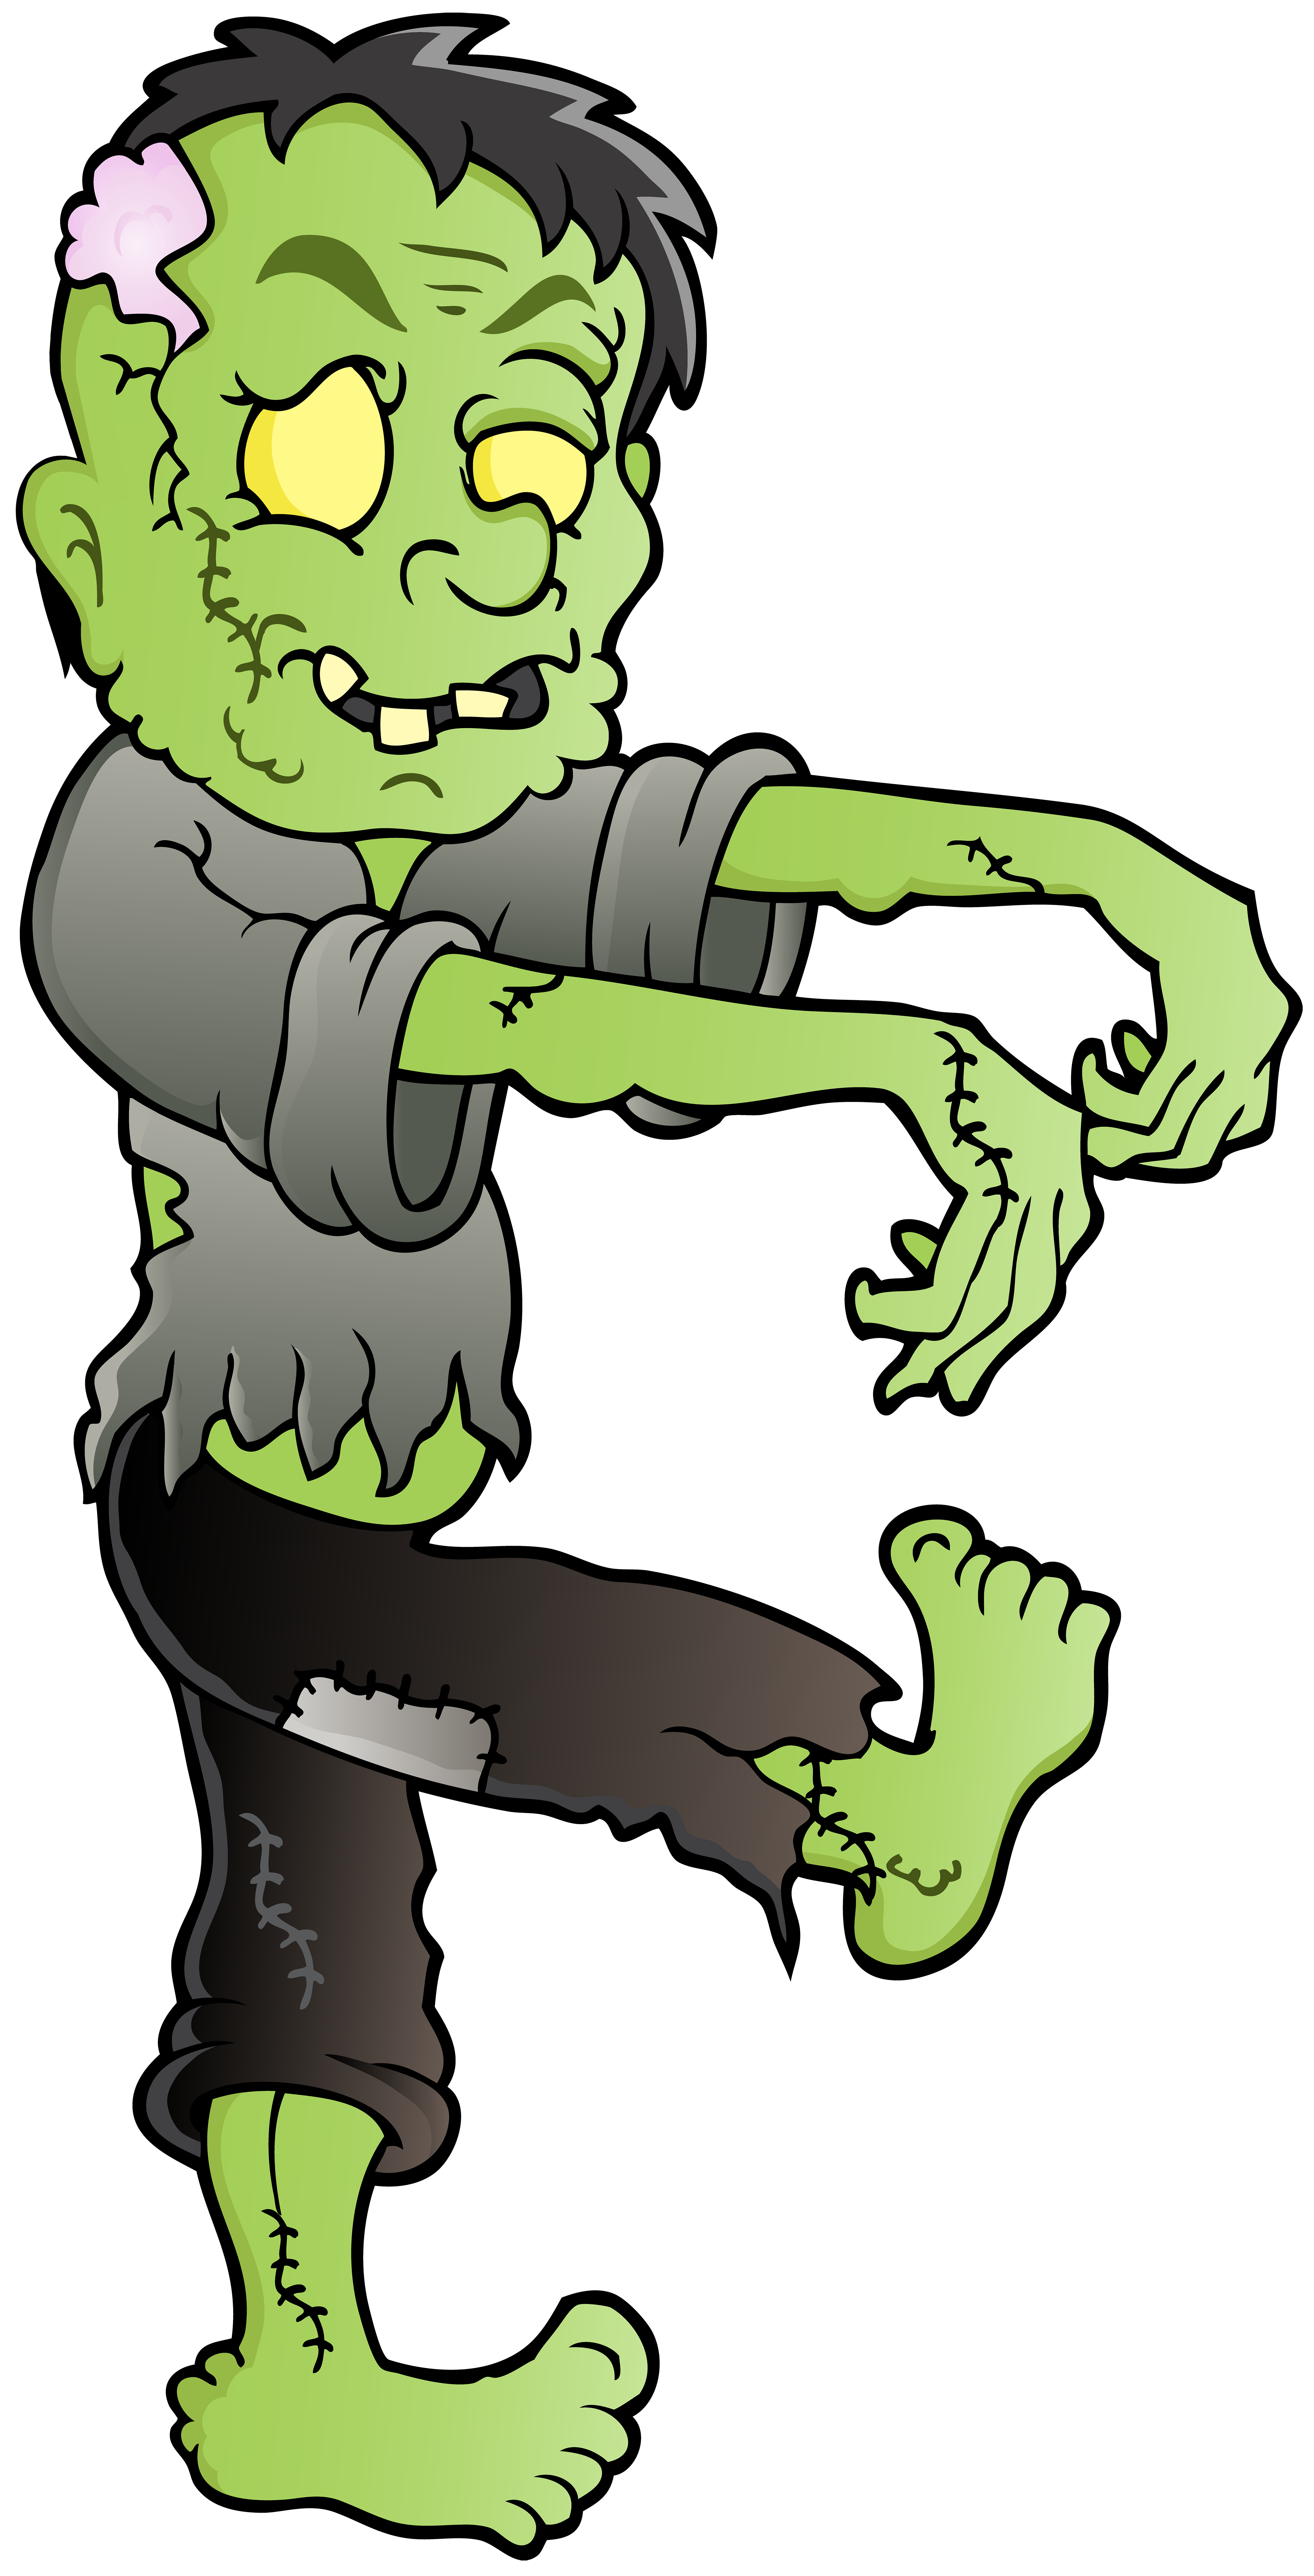 Png clip art image. Foot clipart zombie